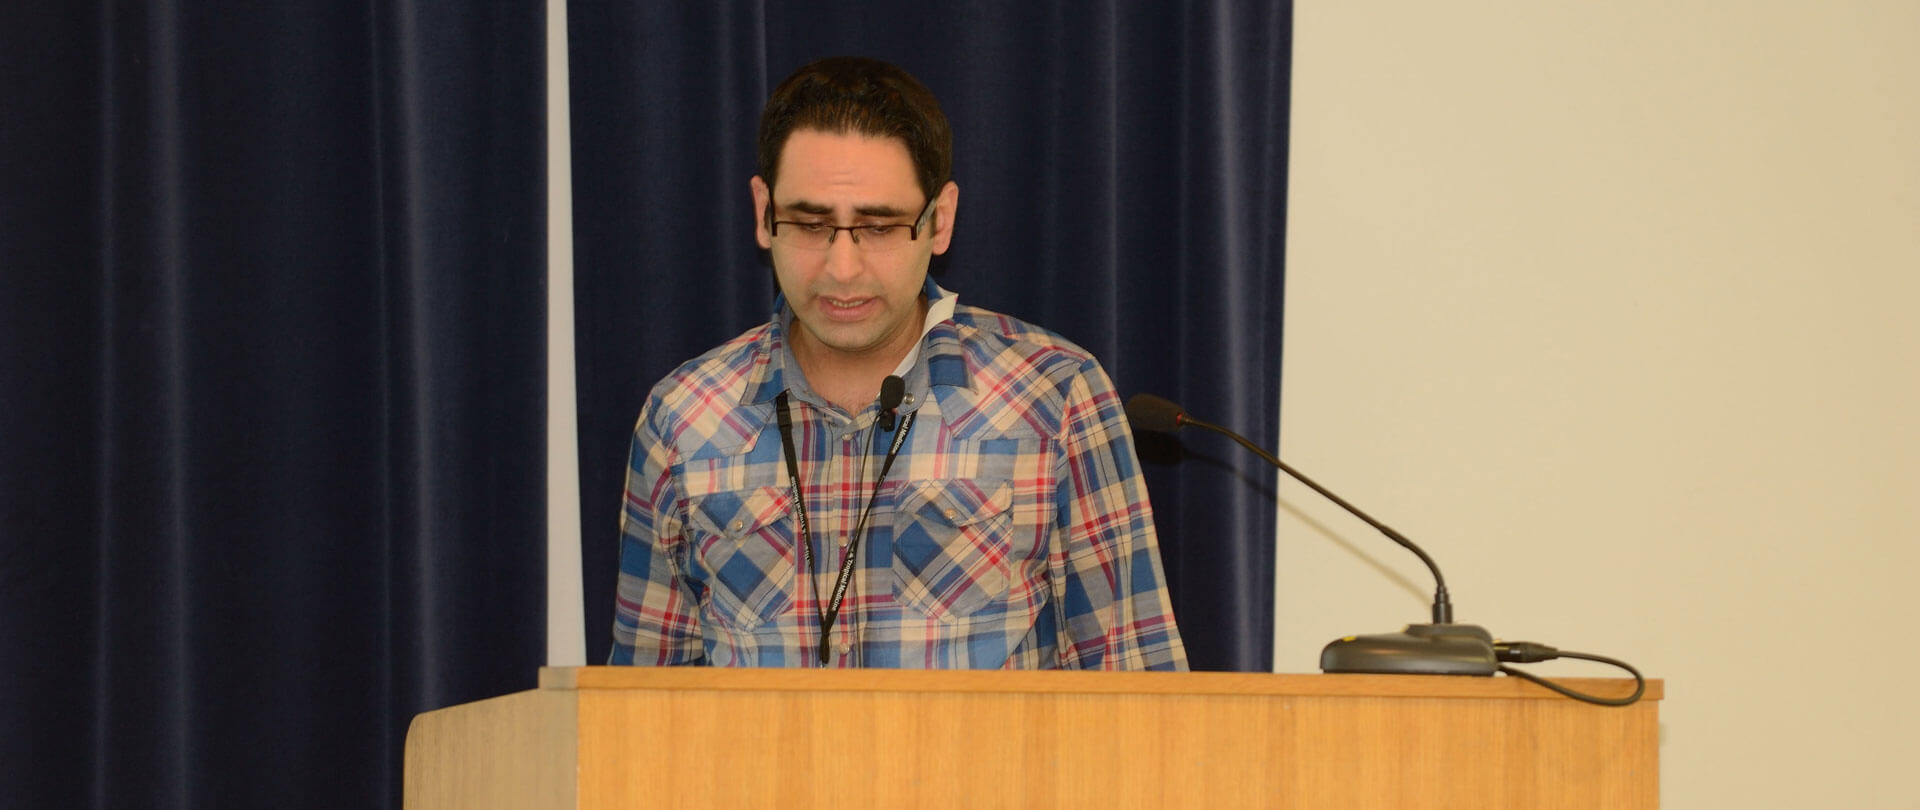 hashir-conference